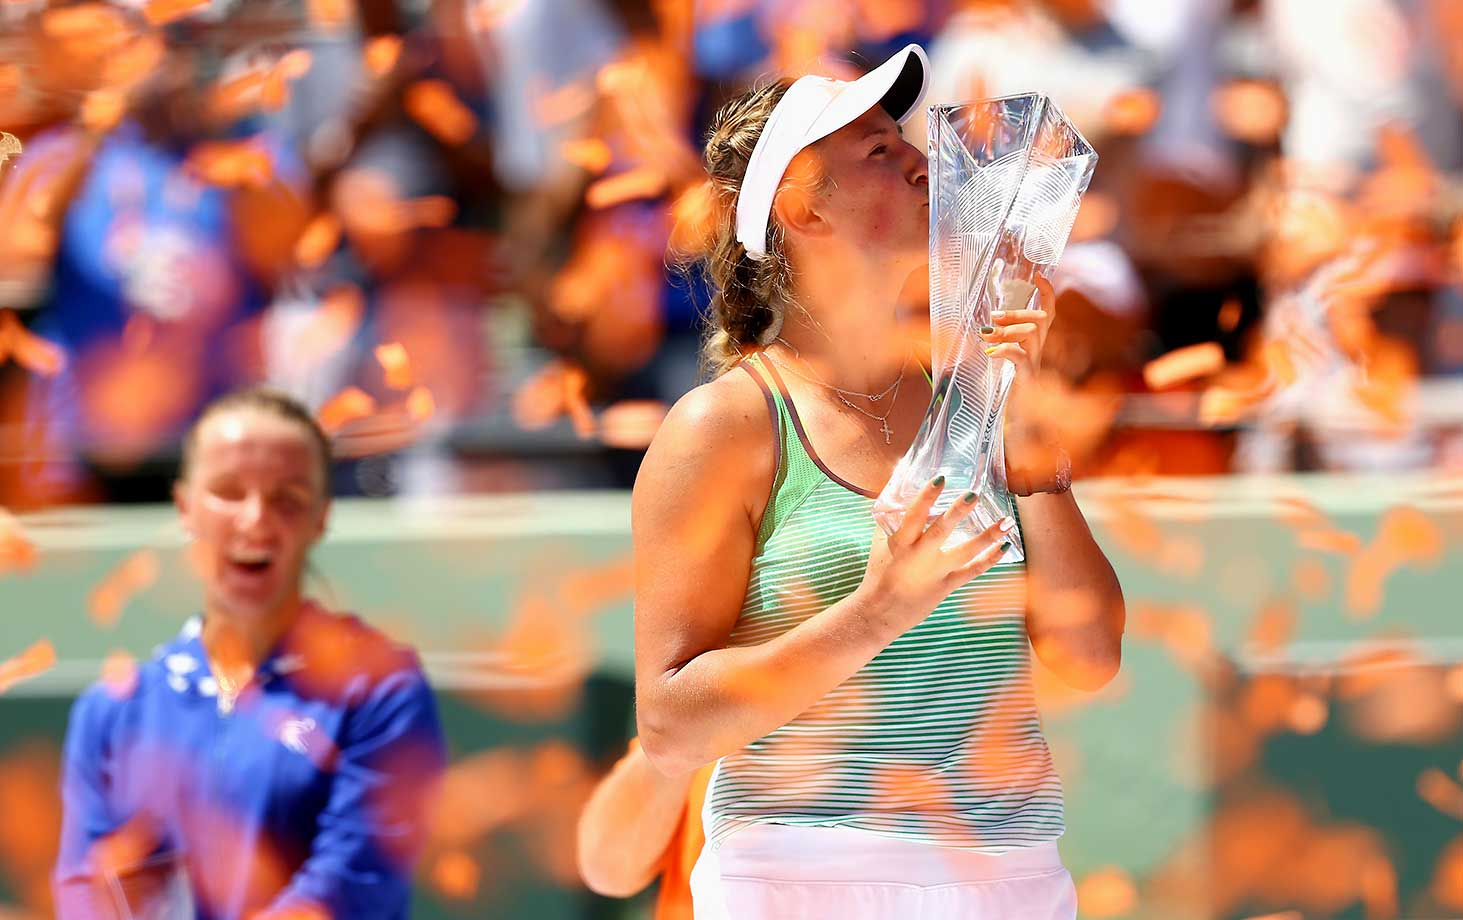 Victoria Azarenka holds aloft the trophy after winning the Miami Open in straight sets over Svetlana Kuznetsova.